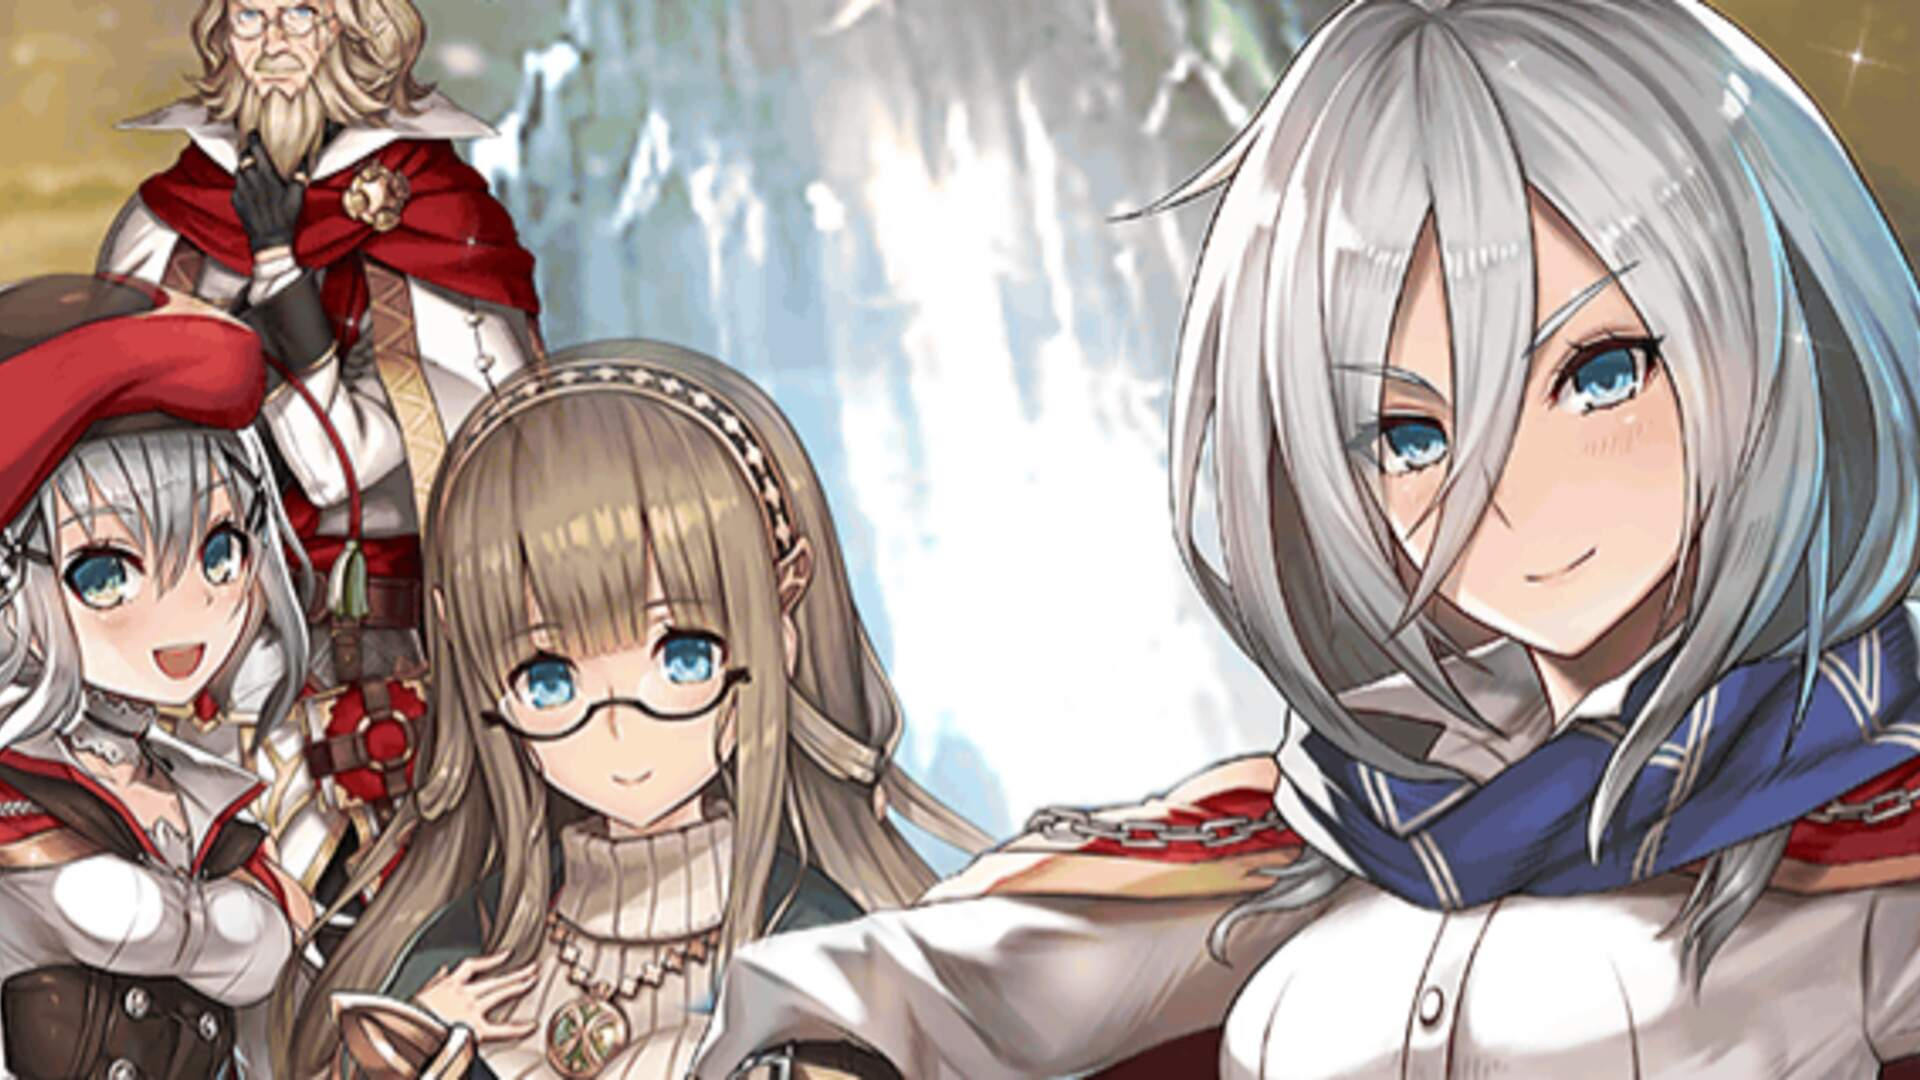 Square Enix's Shut Down Mobile Game, Bravely Archive, Gets Surprise English Release